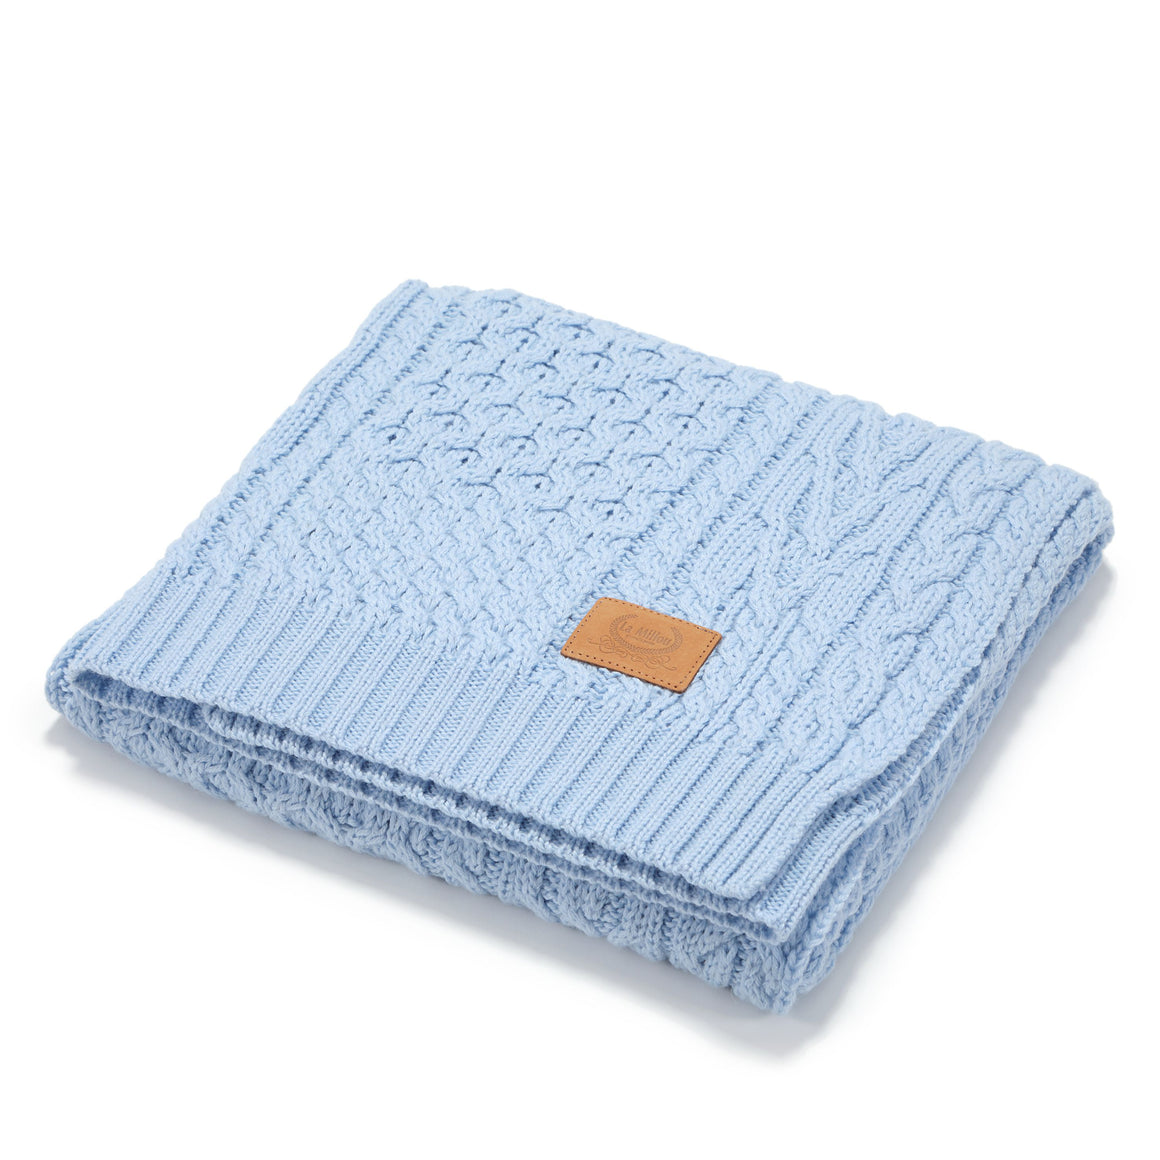 MERINO WOOL TENDER BLANKET - ICE BLUE